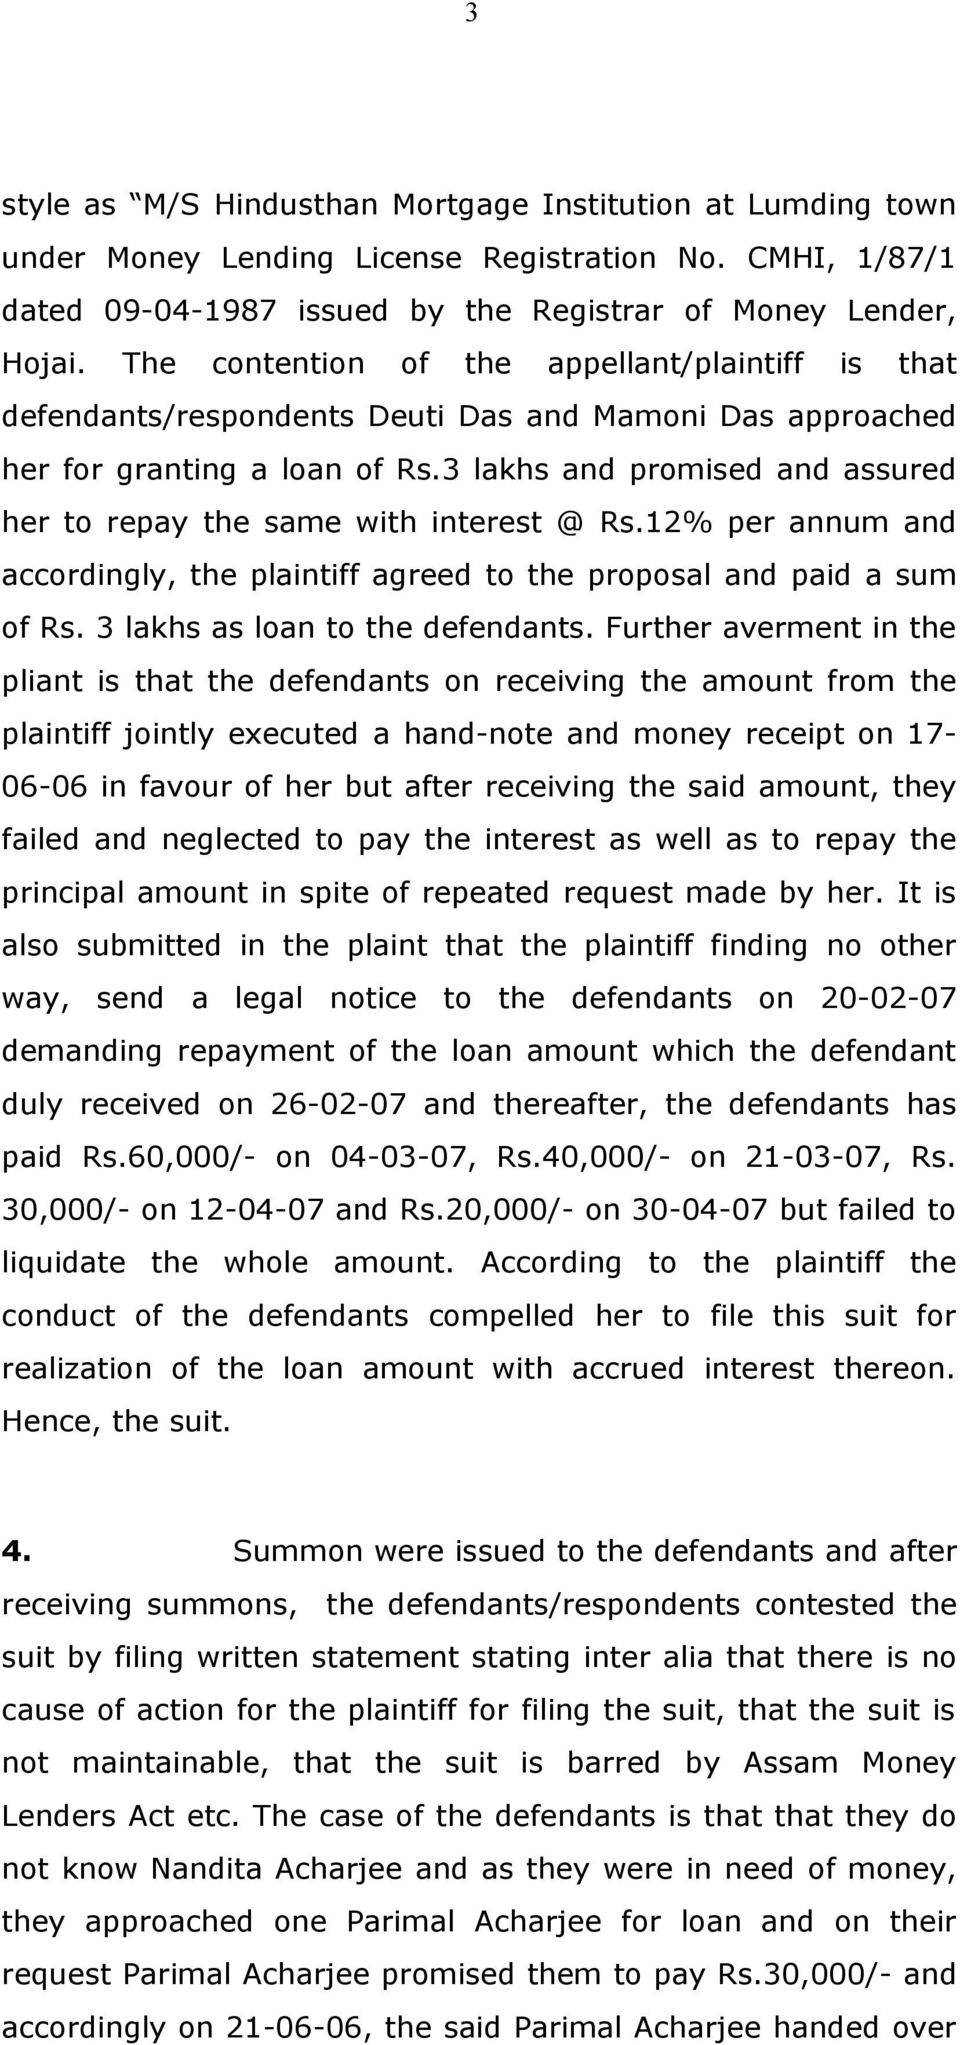 3 lakhs and promised and assured her to repay the same with interest @ Rs.12% per annum and accordingly, the plaintiff agreed to the proposal and paid a sum of Rs. 3 lakhs as loan to the defendants.